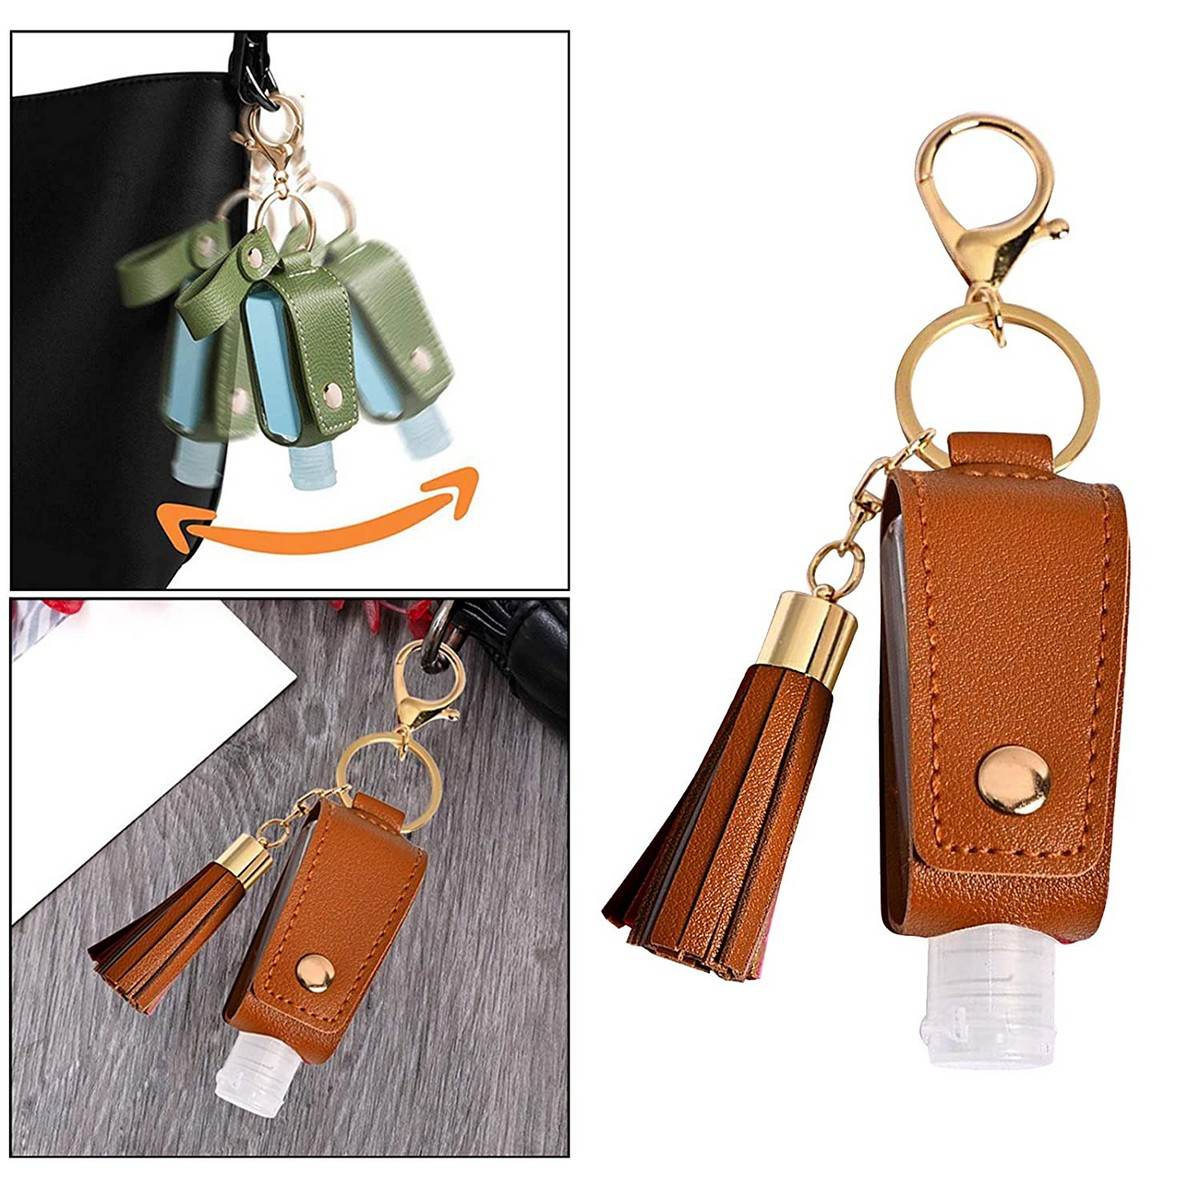 Women,Men PU Leather Keychain Holder Female Multifunctional Bag For Bottle Refillable Container Lady Hand Sanitize Case